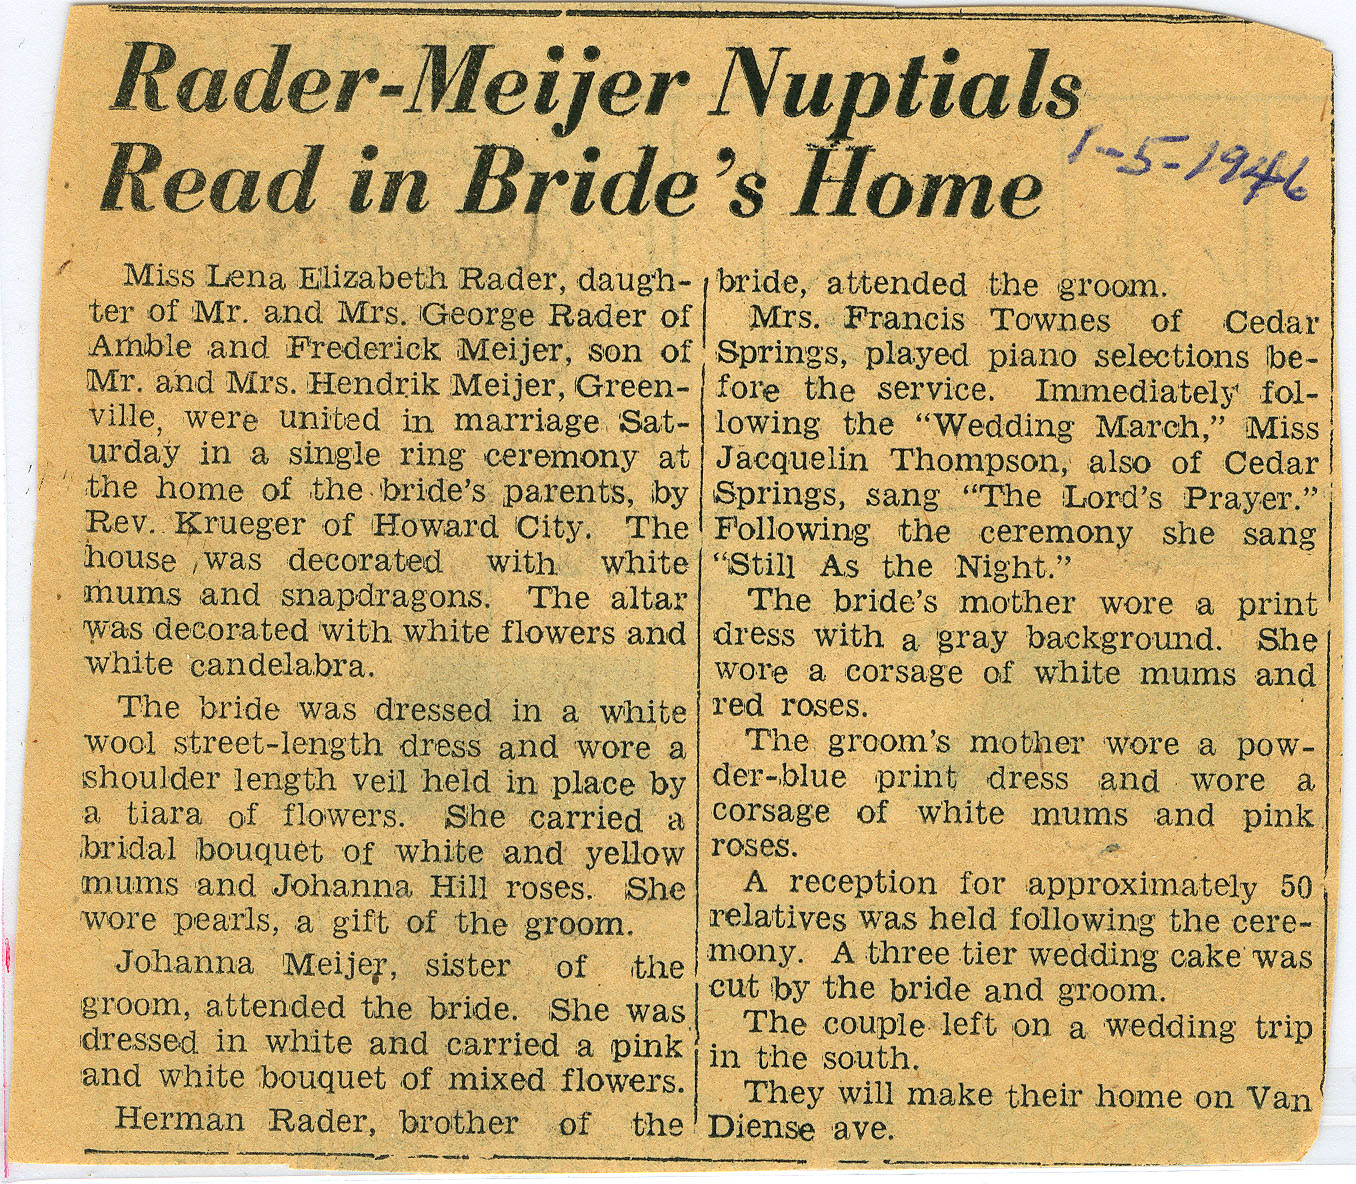 Meijer, Fred and Lena, Wedding Announcement, 1-19460001.jpg